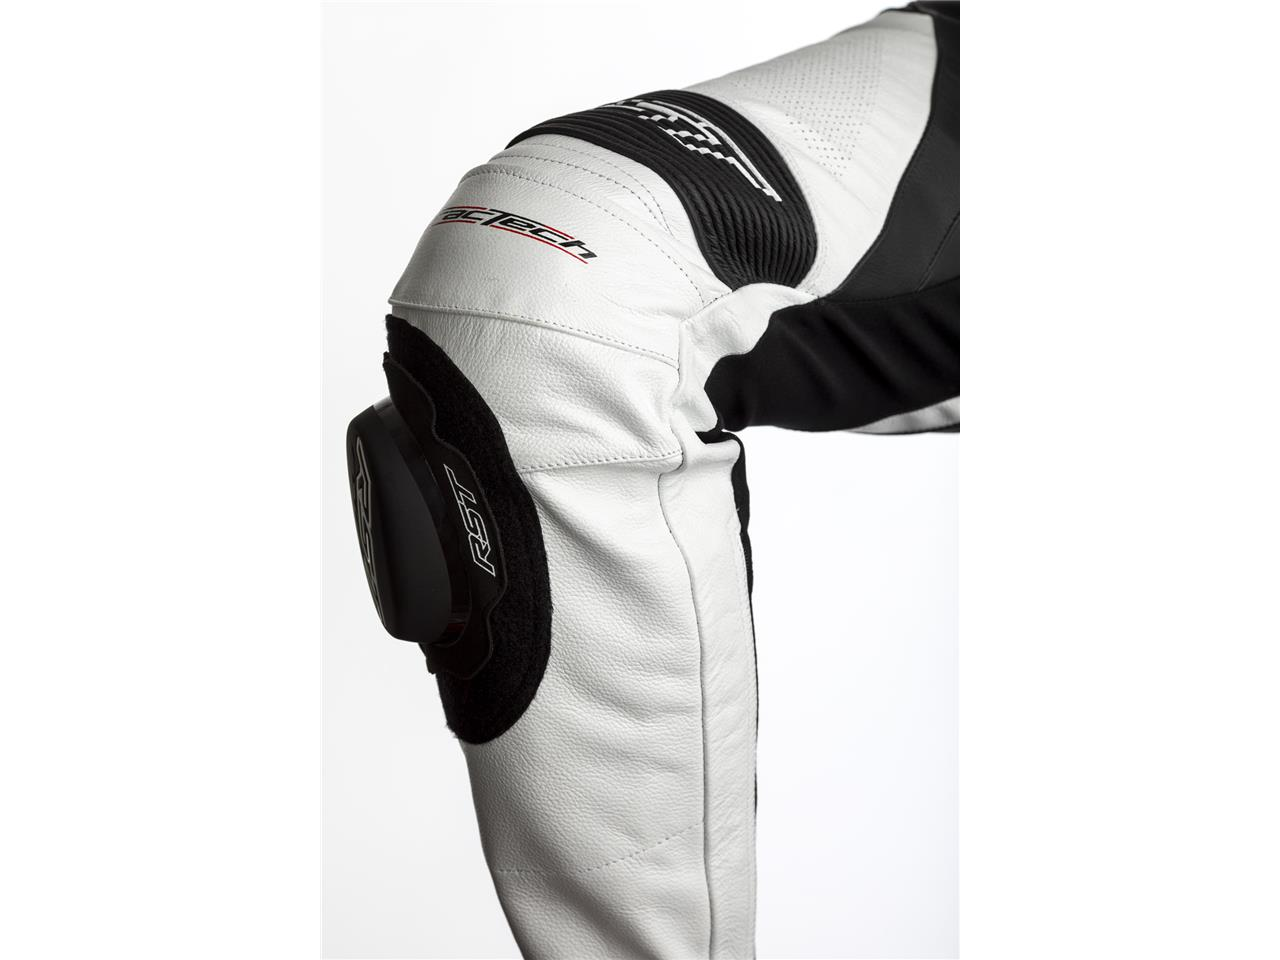 Combinaison RST Tractech EVO 4 CE cuir blanc